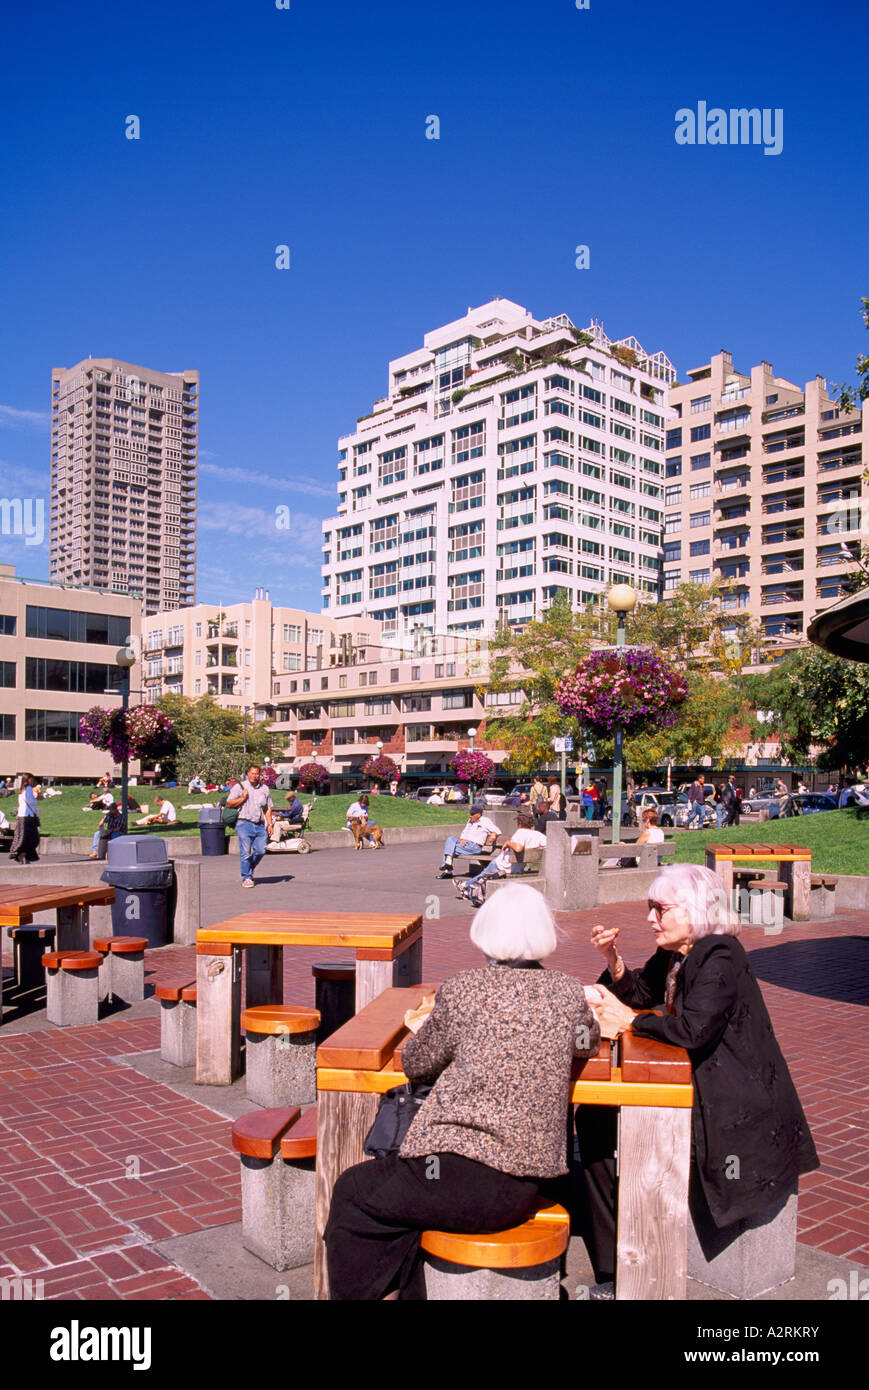 'Victor Steinbrueck' Park Downtown Seattle Washington State USA - Stock Image